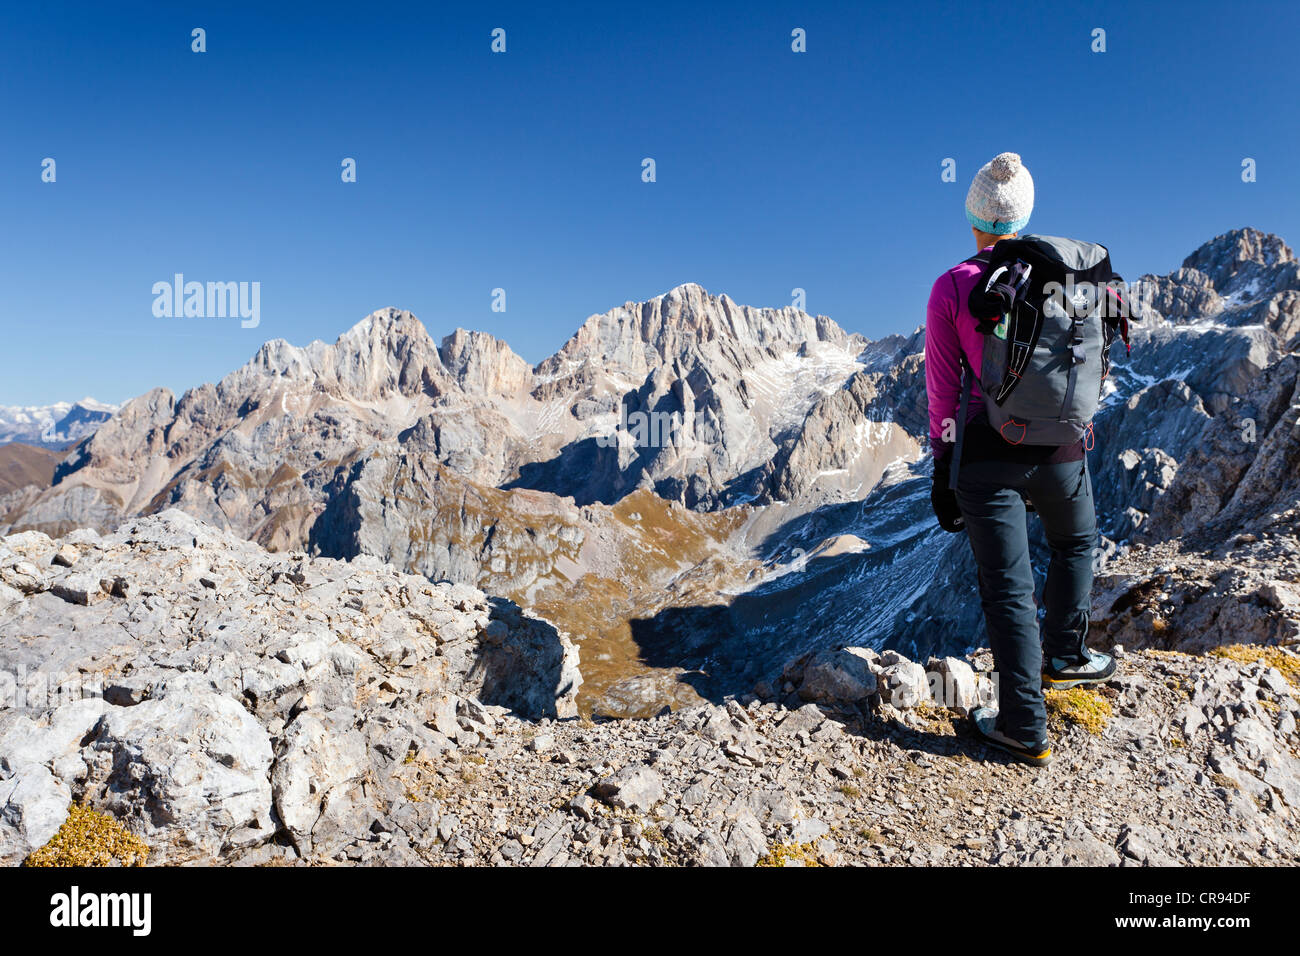 Hiker on Costabella Mountain while ascending the Bepi Zac Climbing Route in the San Pellegrino Valley above the Stock Photo